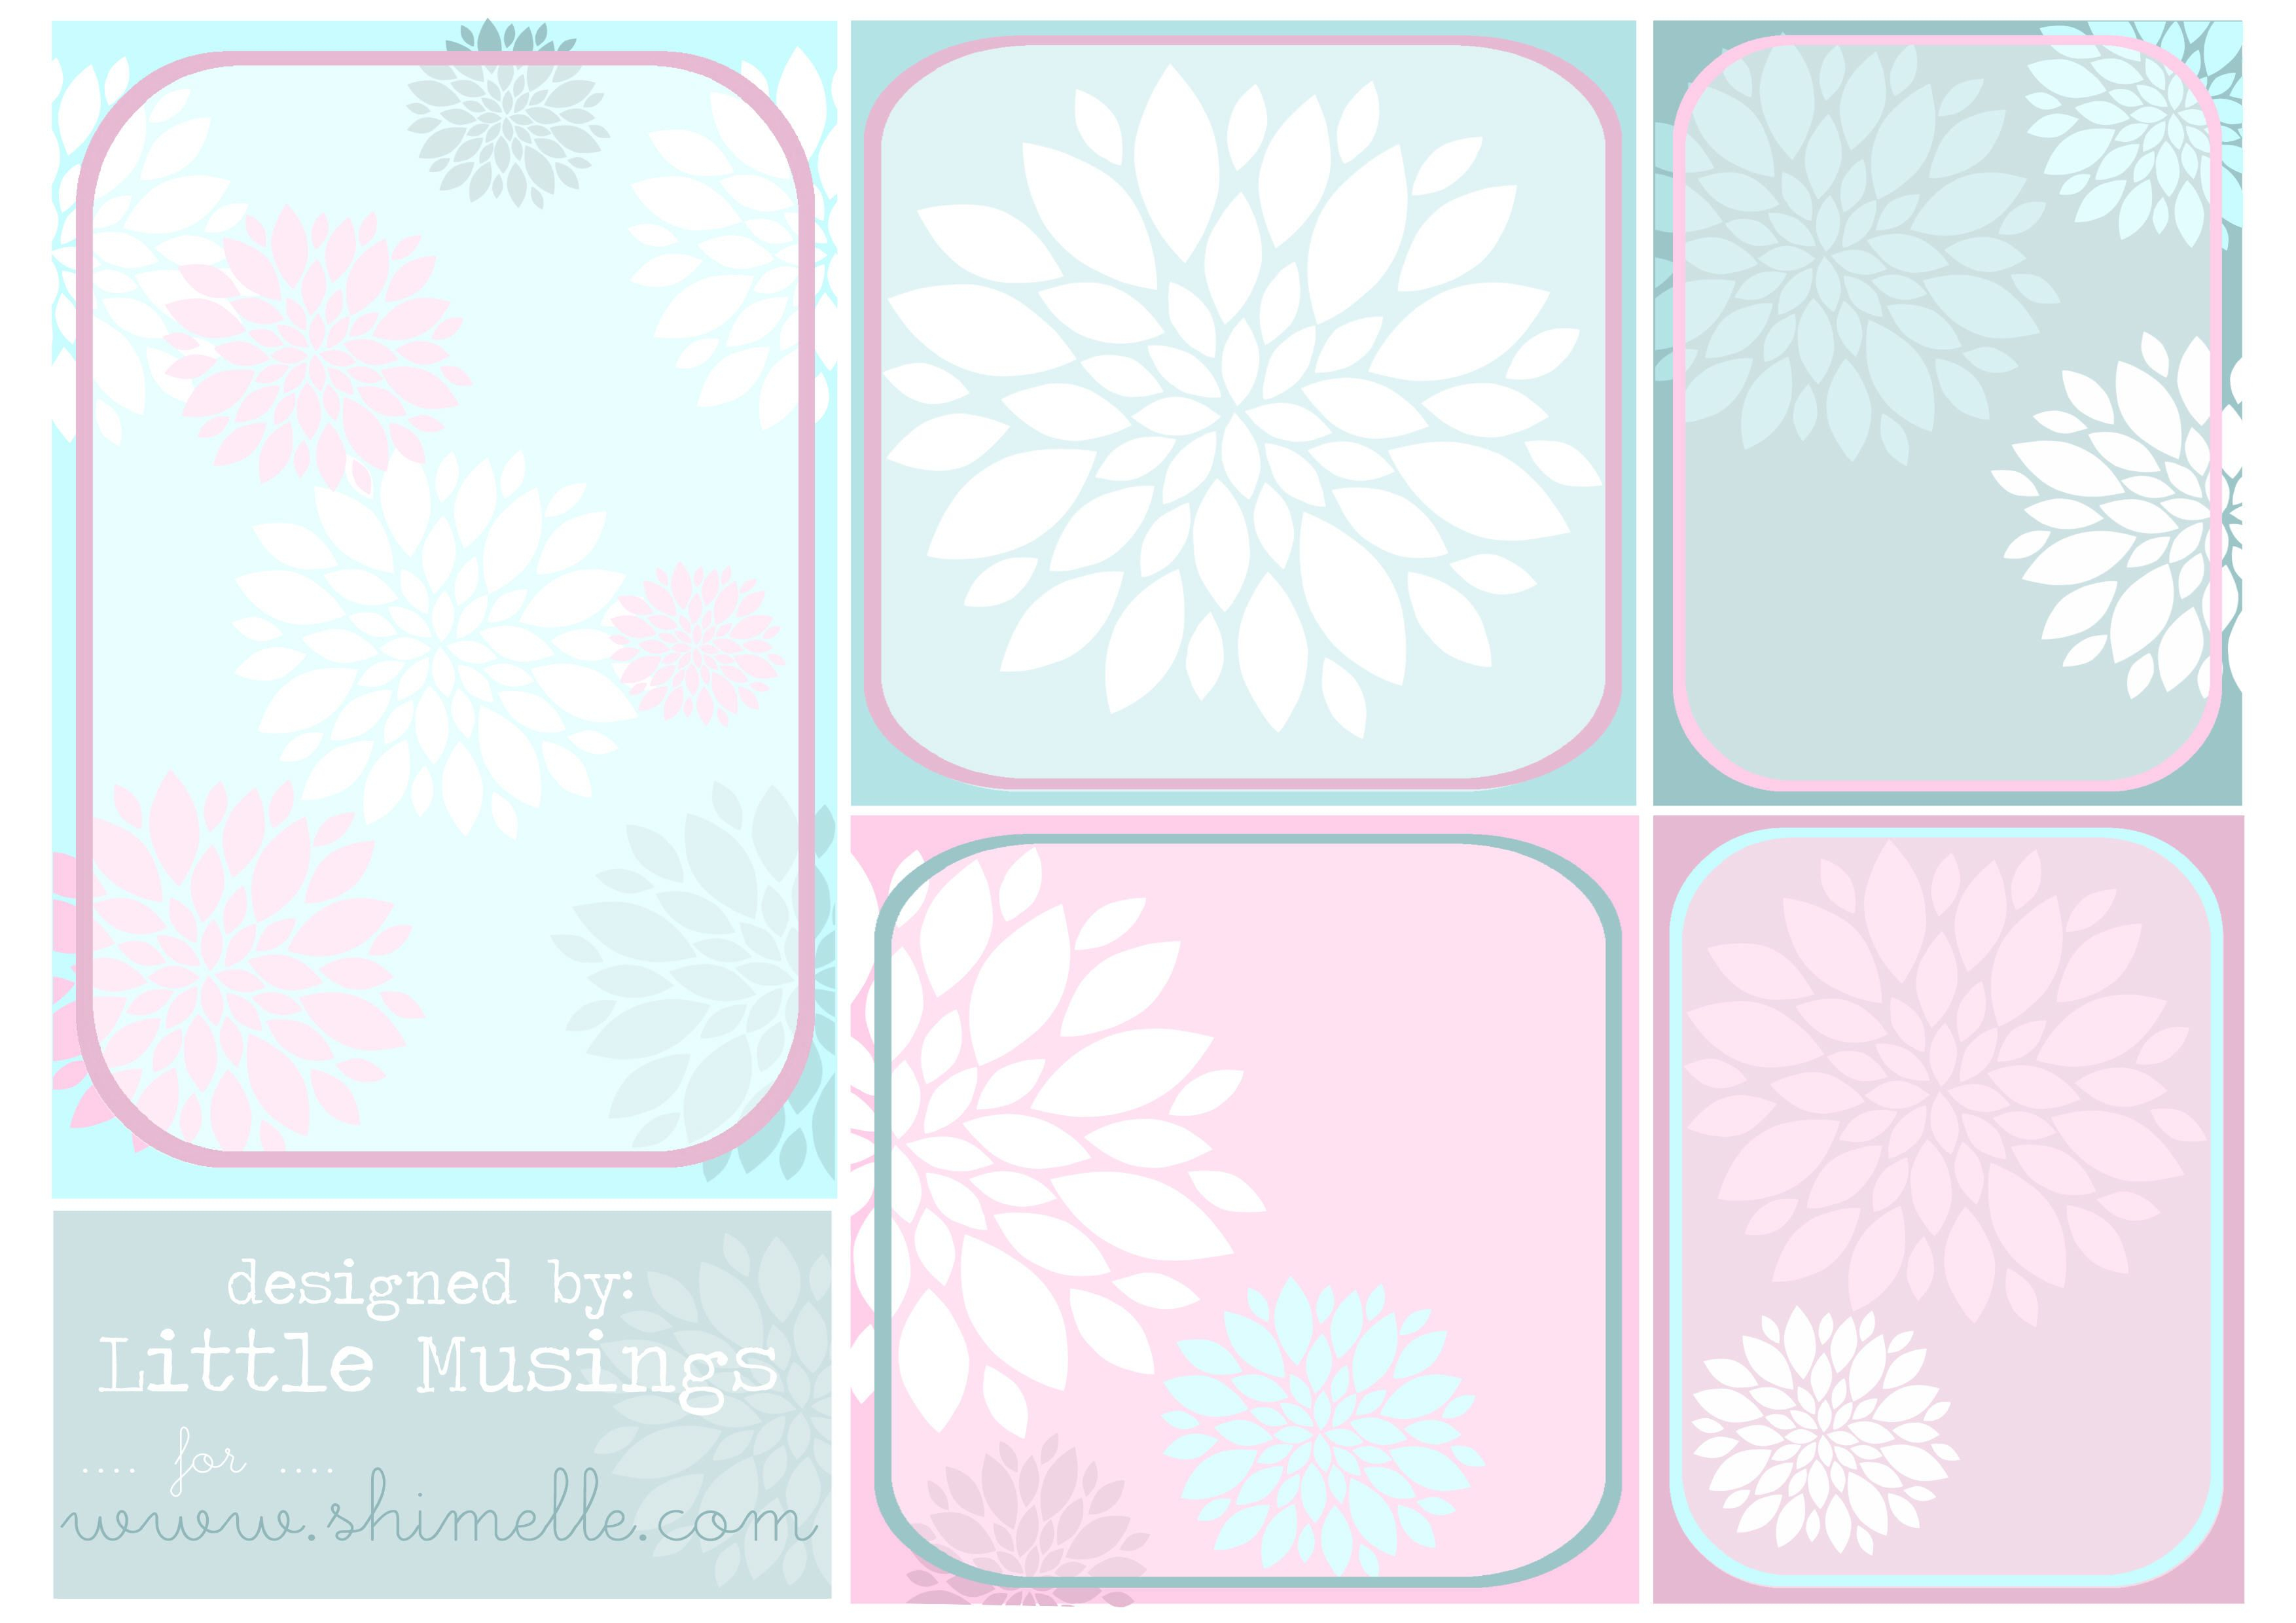 25 Best Image Of Scrapbook Printables Templates | Scrapbook Diy - Free Printable Scrapbook Templates